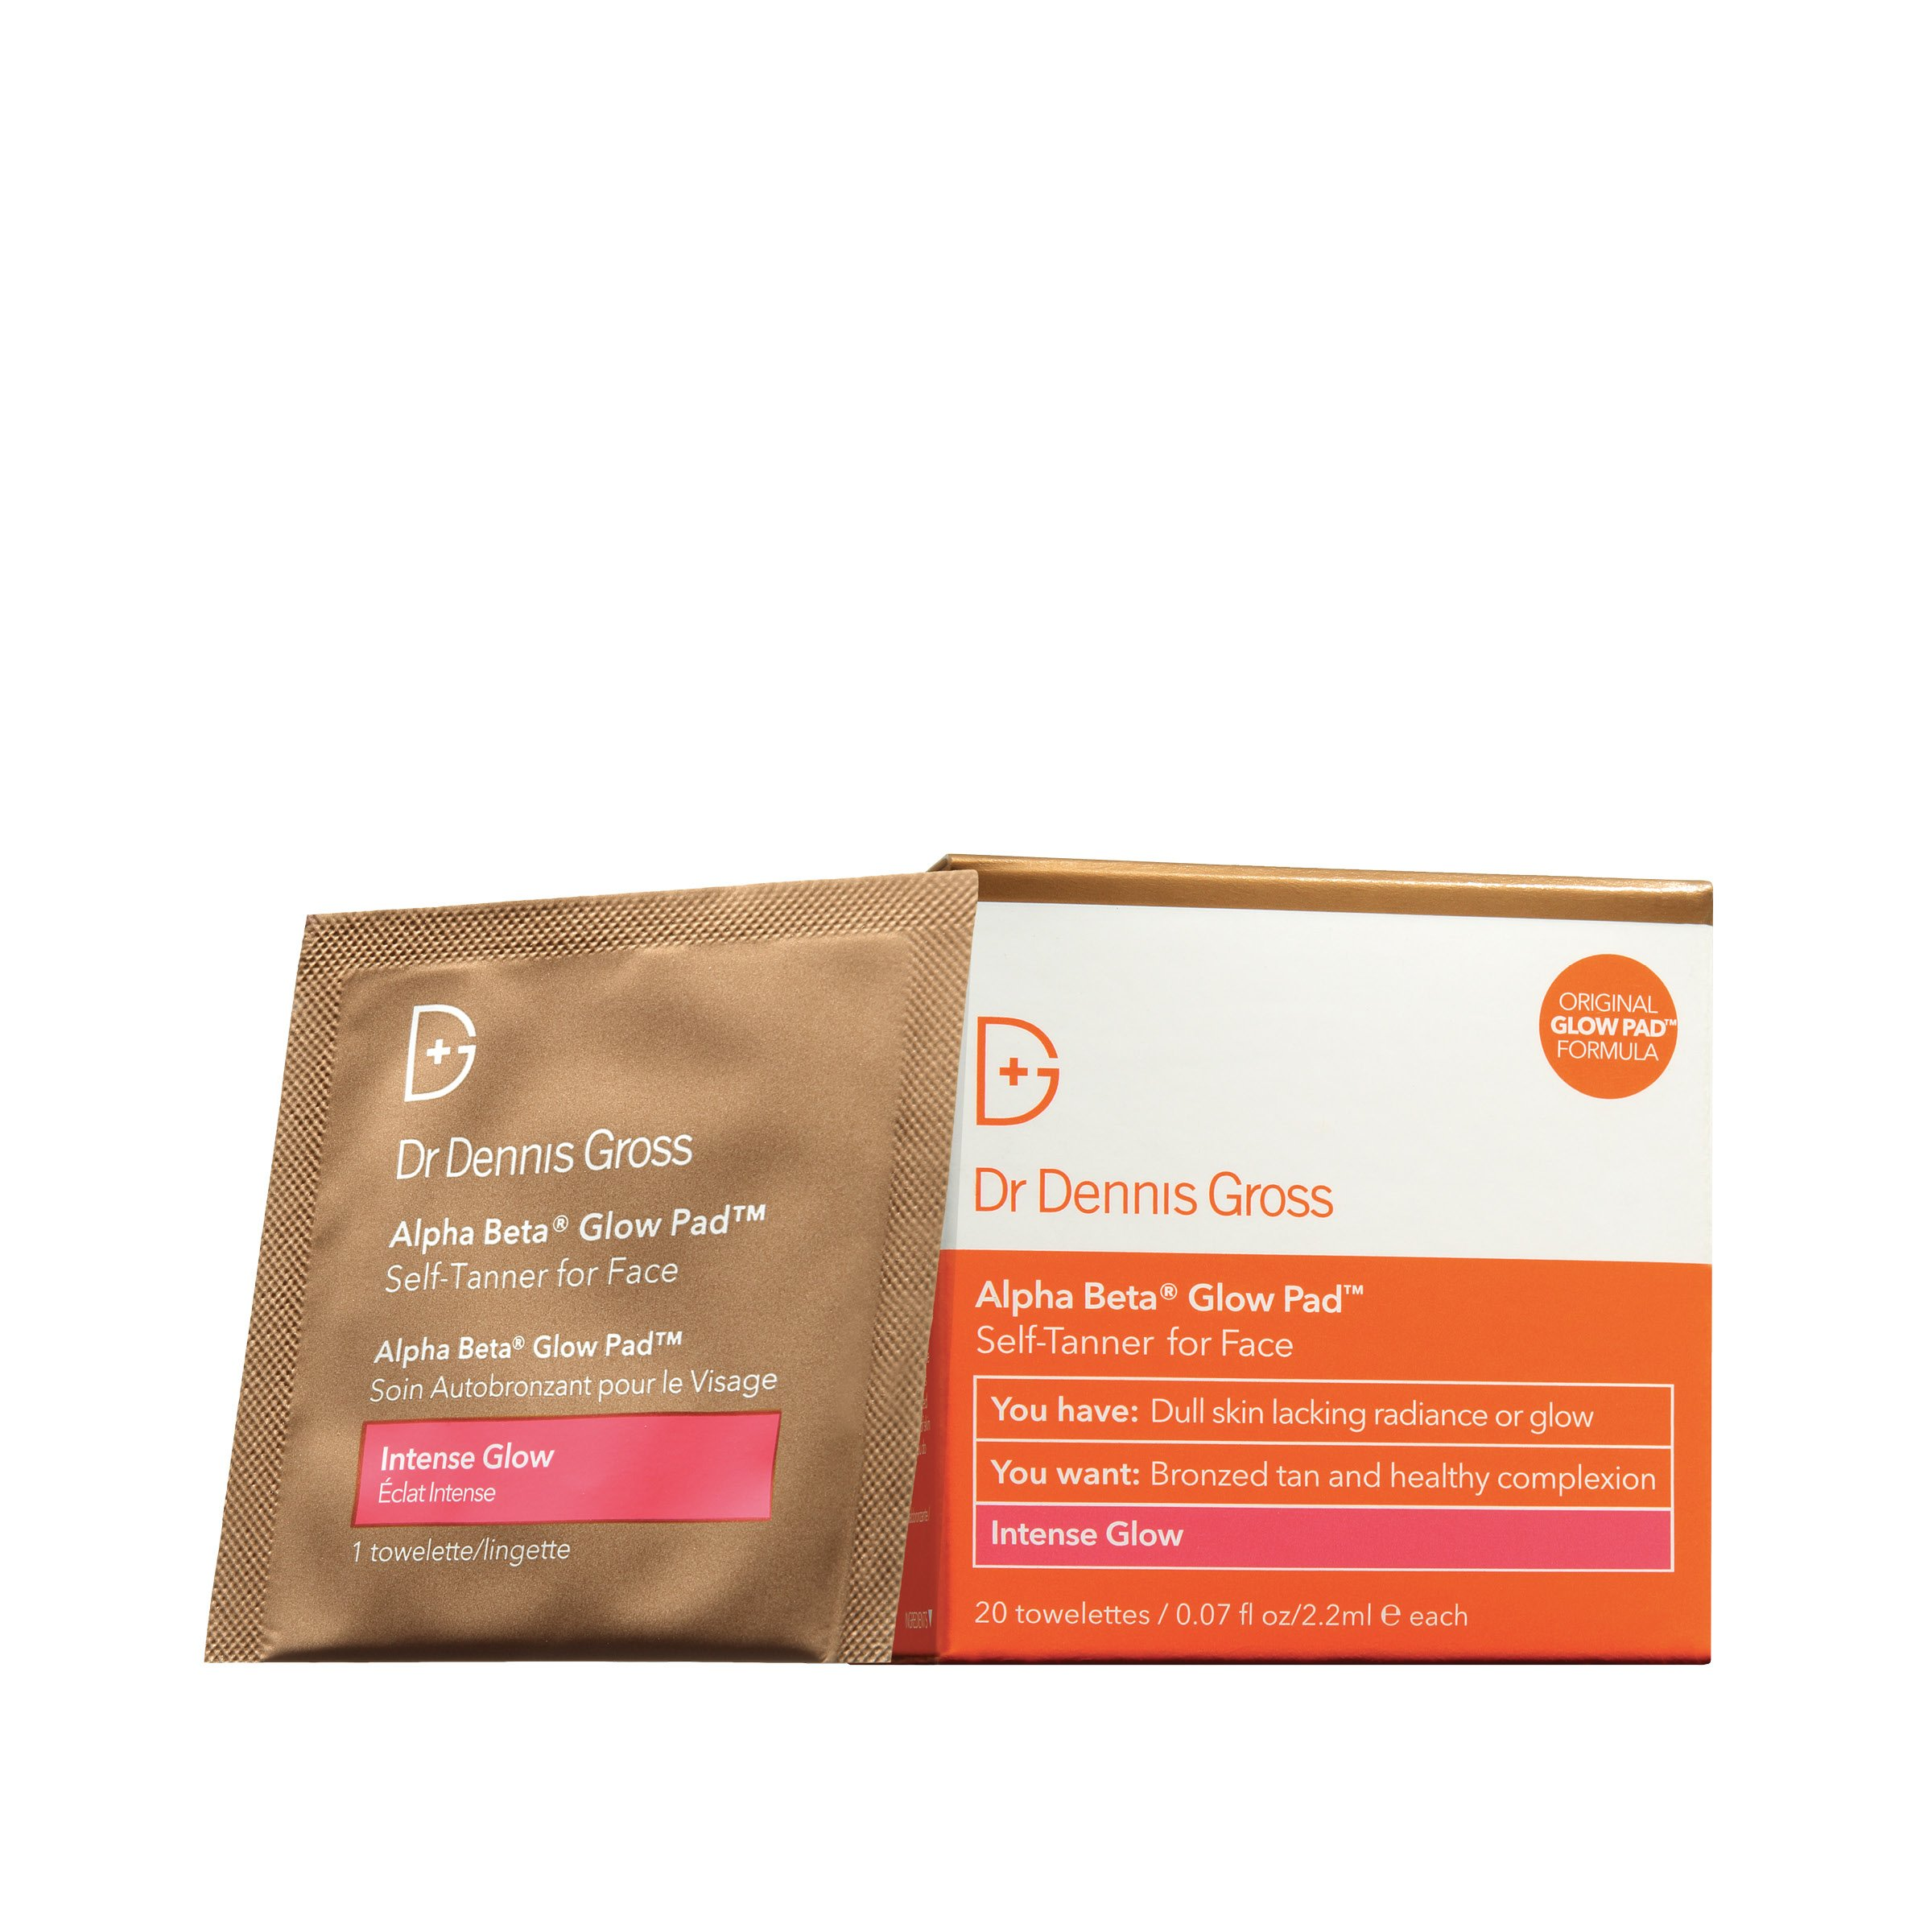 Alpha Beta Glow Pad Intense Glow by Dr. Dennis Gross Skincare